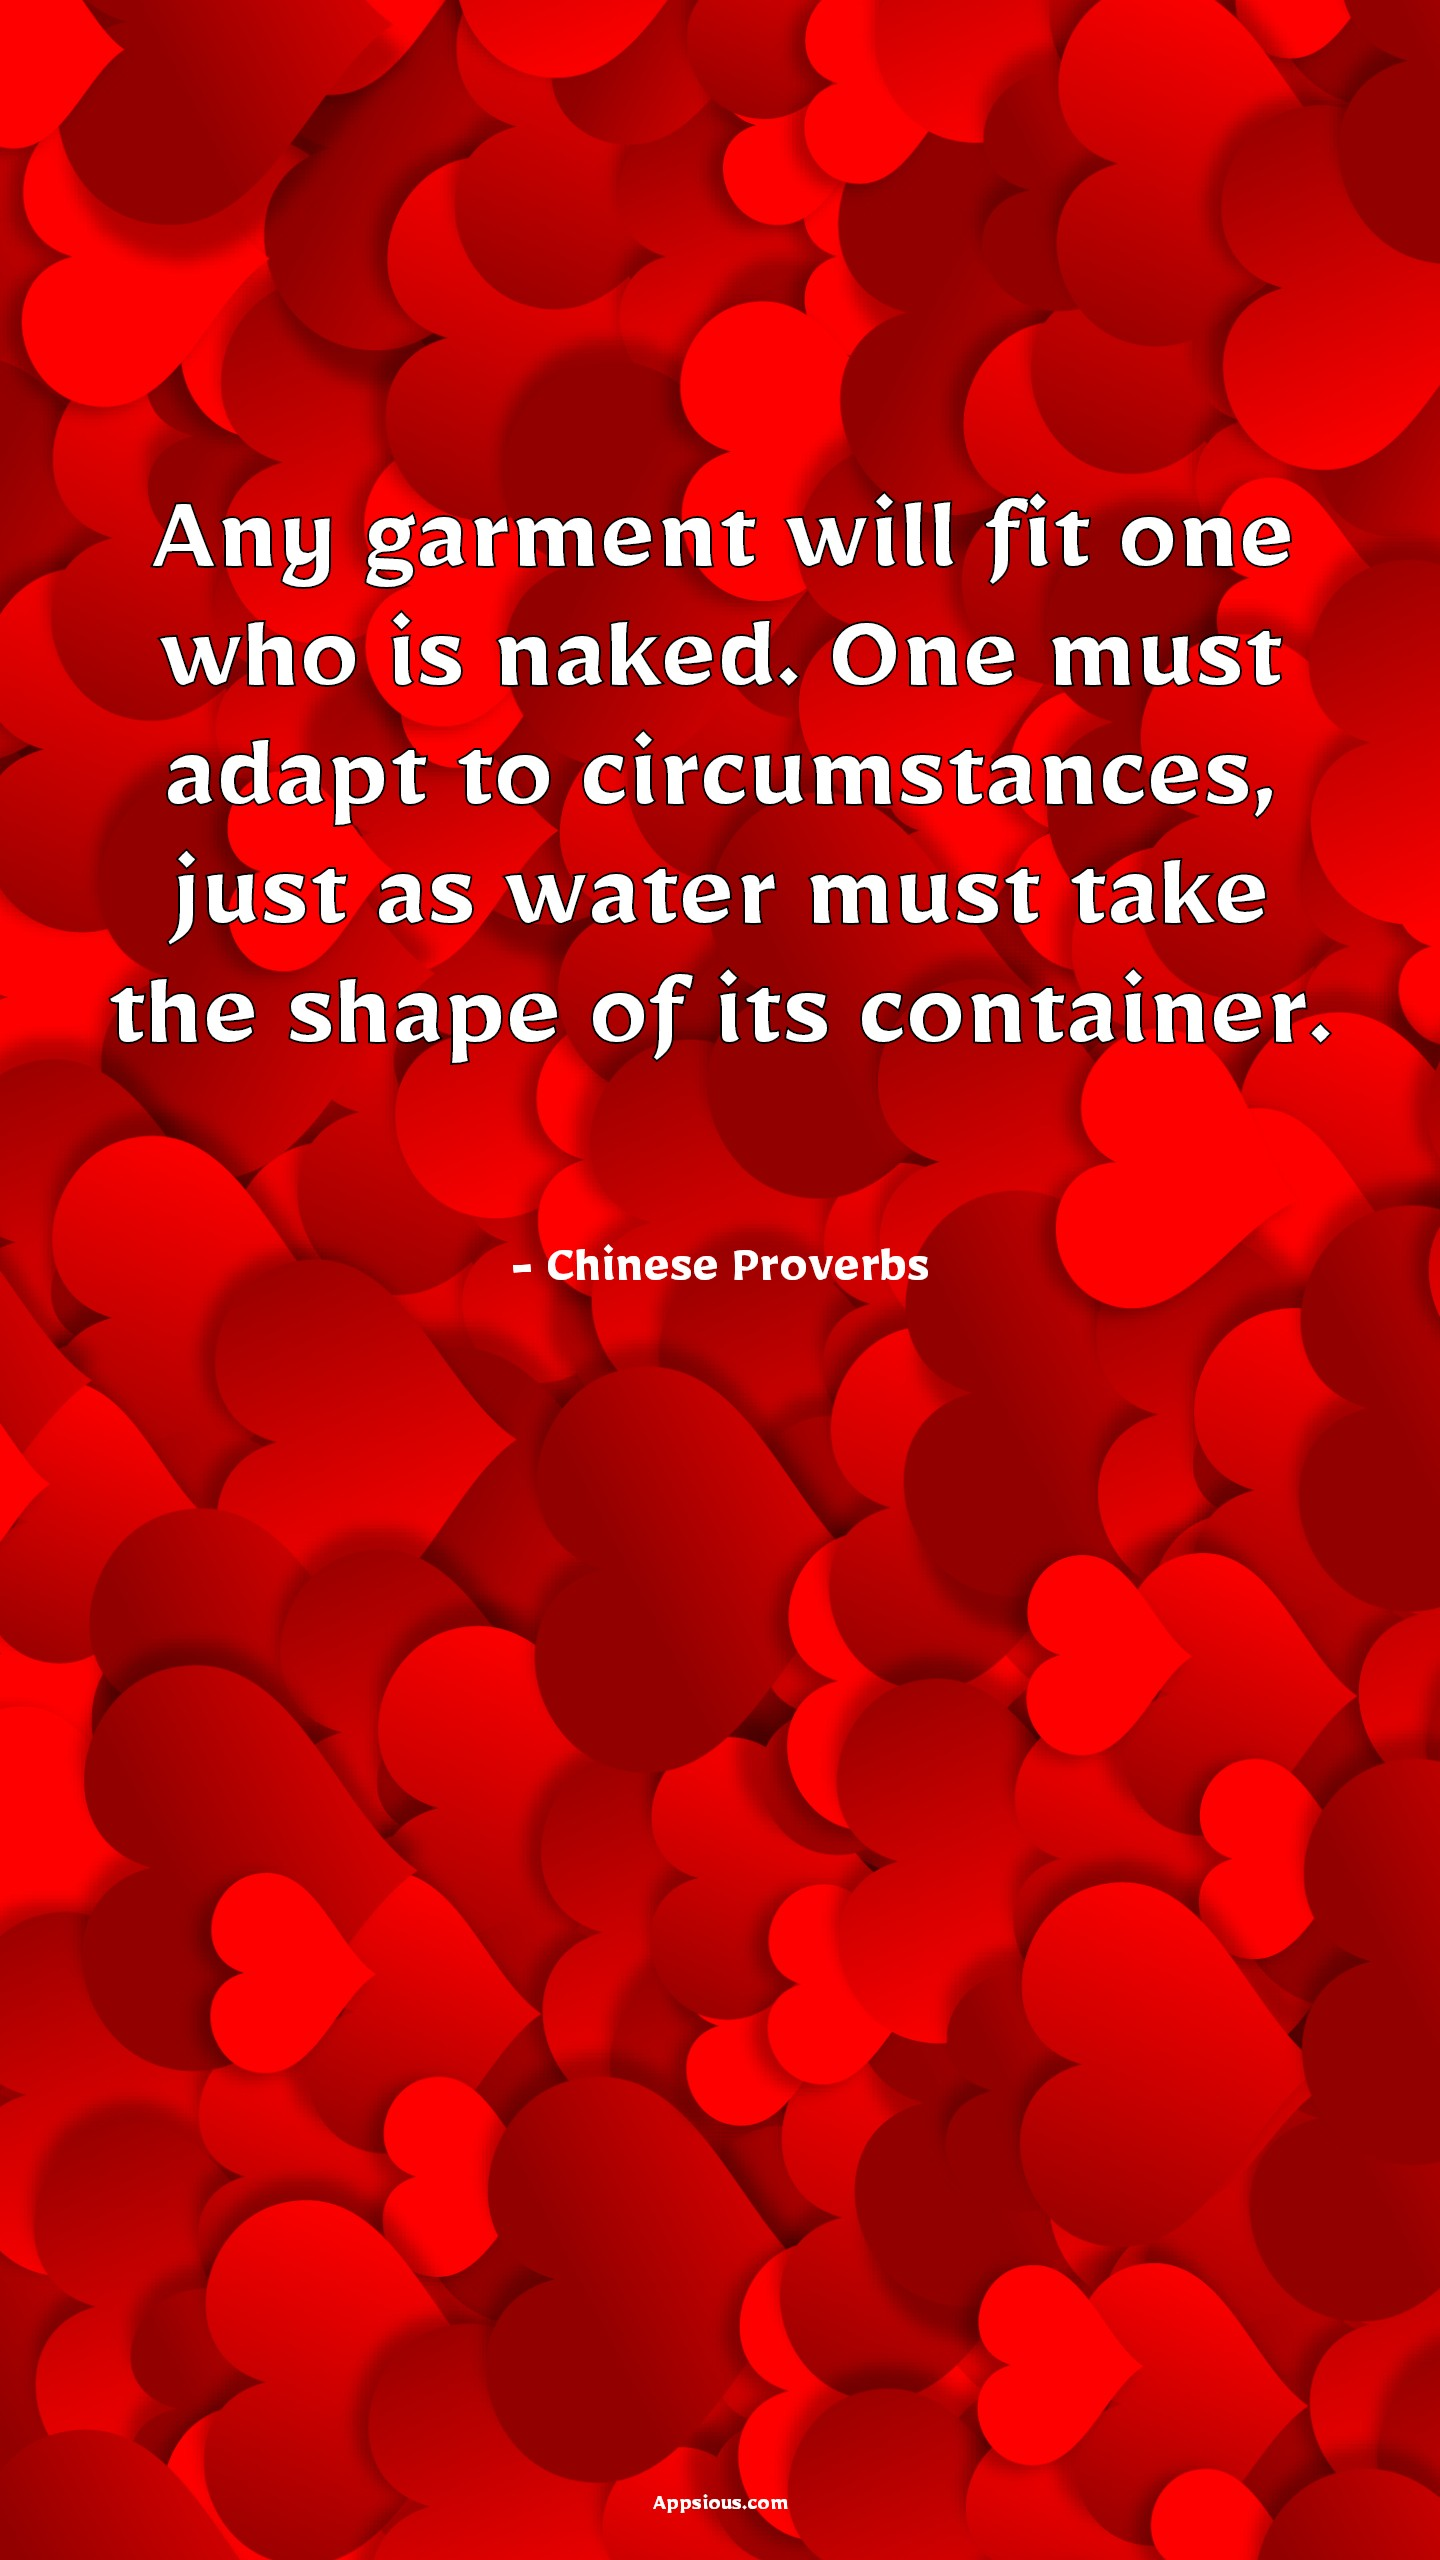 Any garment will fit one who is naked. One must adapt to circumstances, just as water must take the shape of its container.